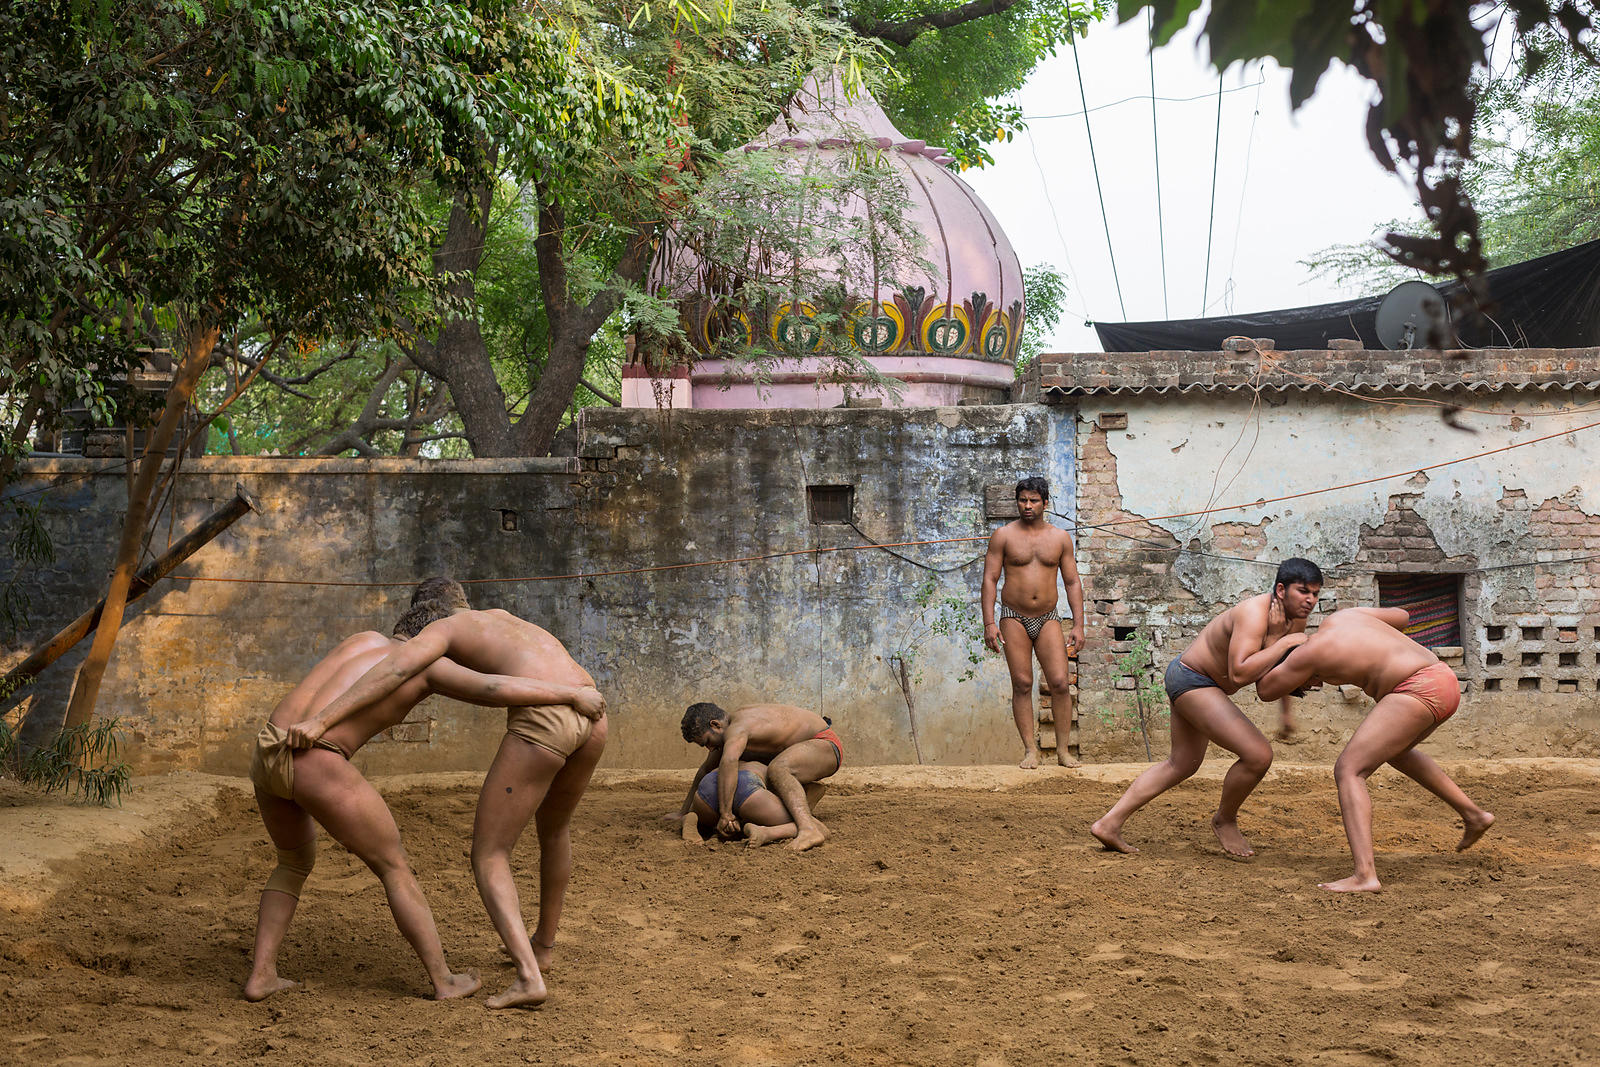 India - New Delhi - Wrestlers at the Guru Jasram Ji Akhara